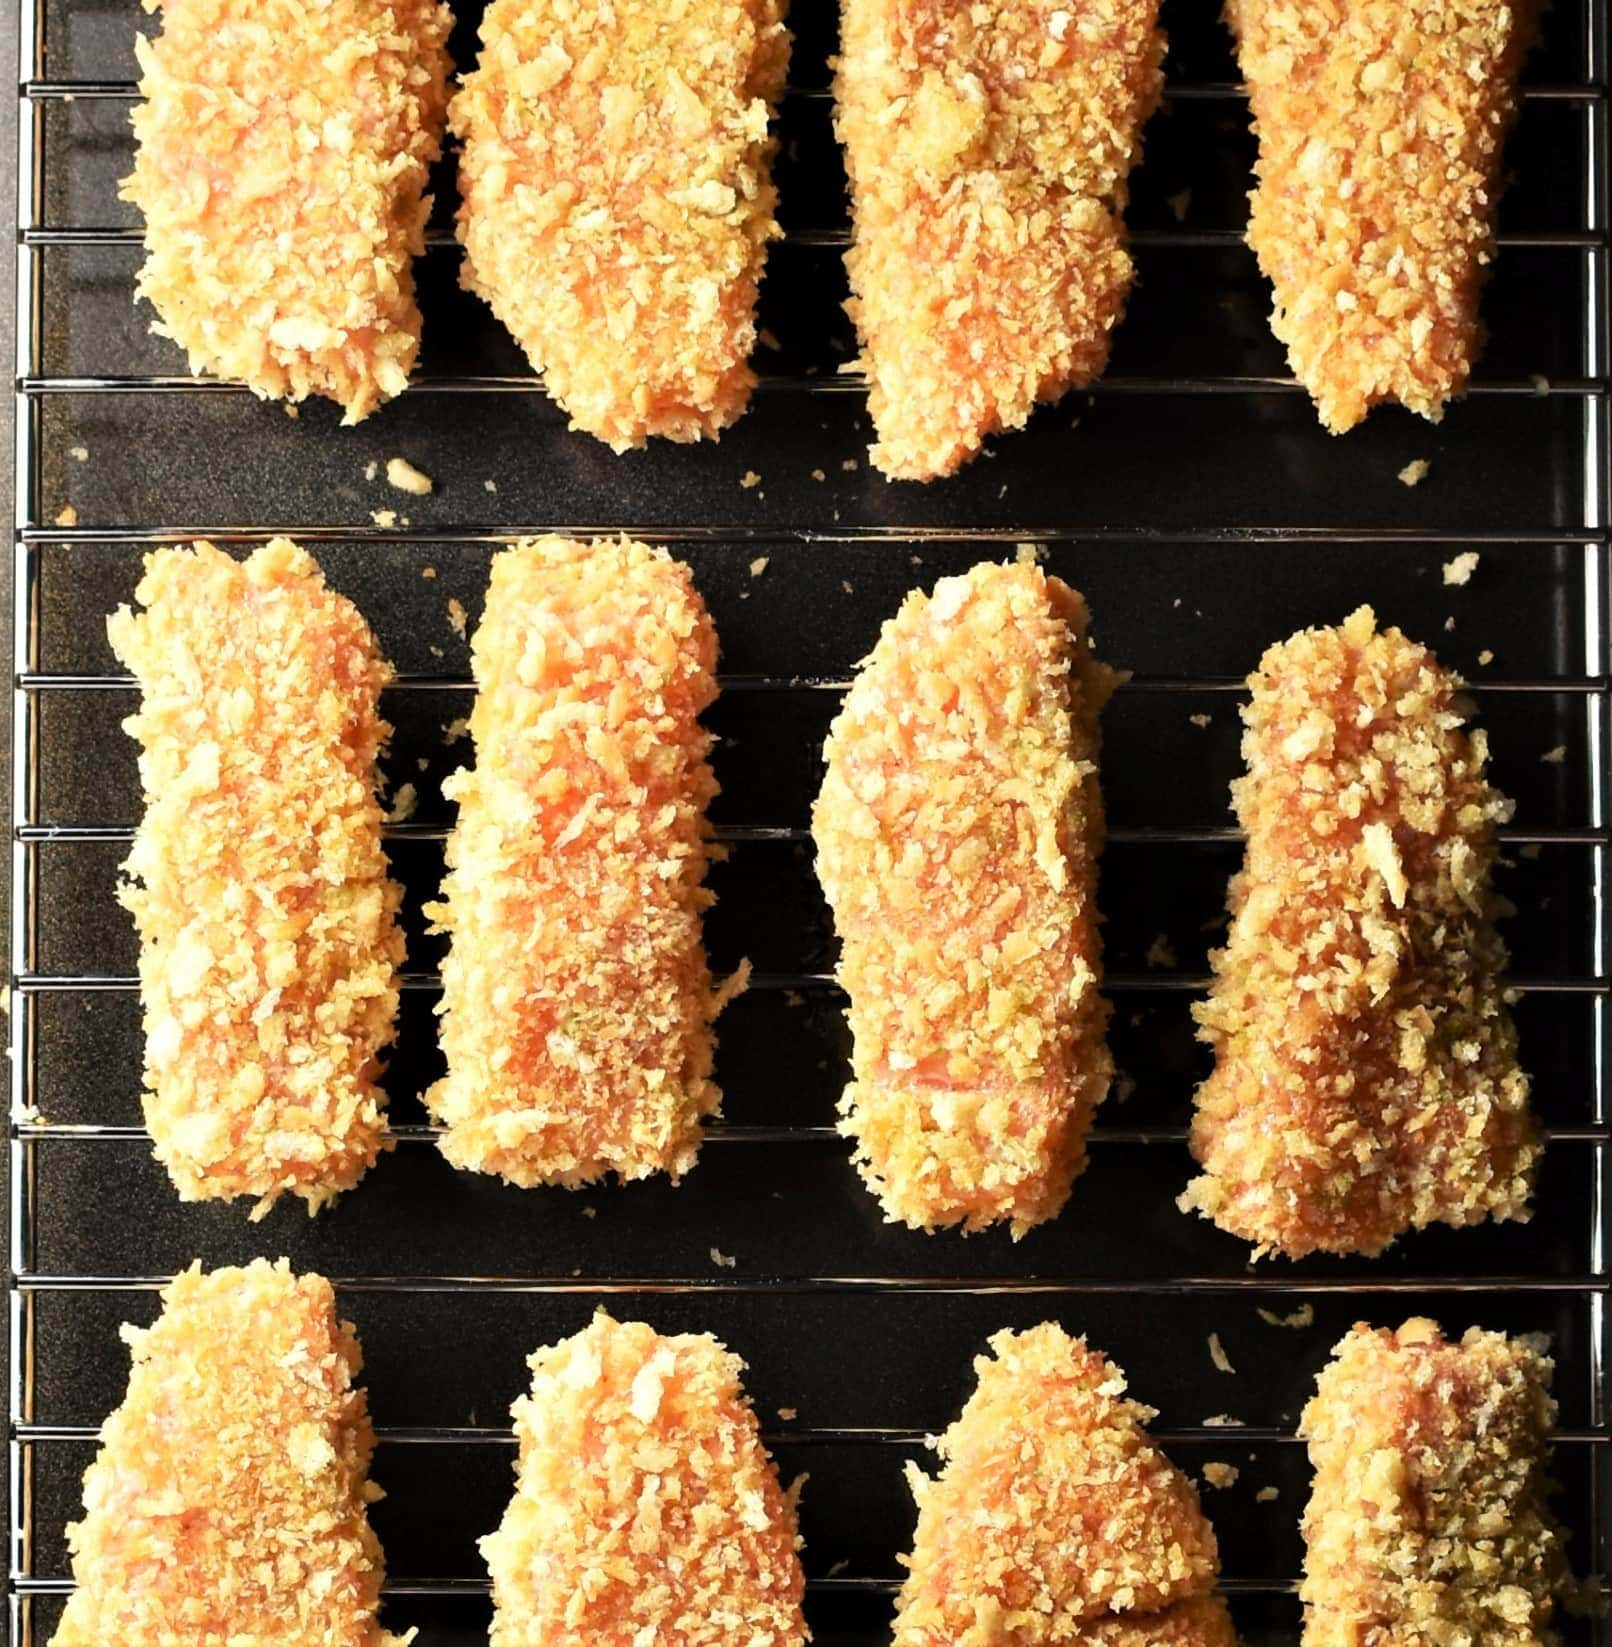 Unbaked breaded salmon pieces on top of rack.